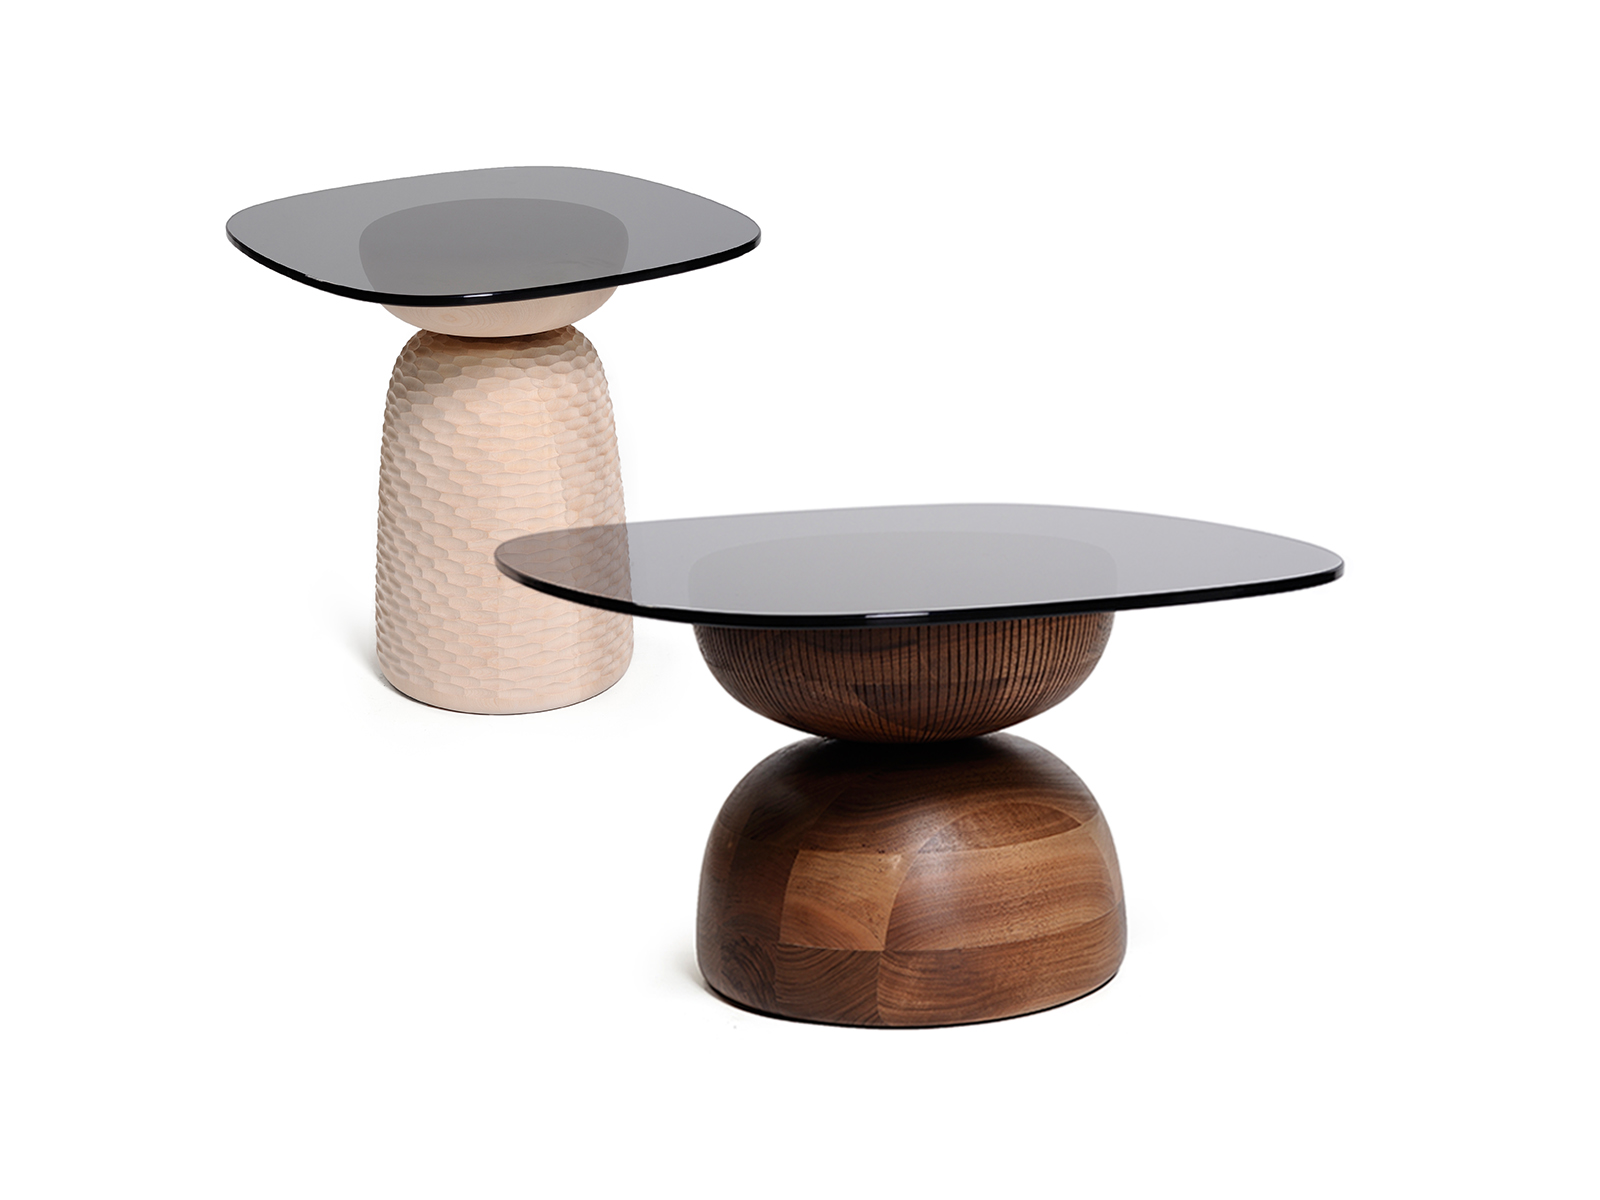 Nera Table for Zanat - New project launched